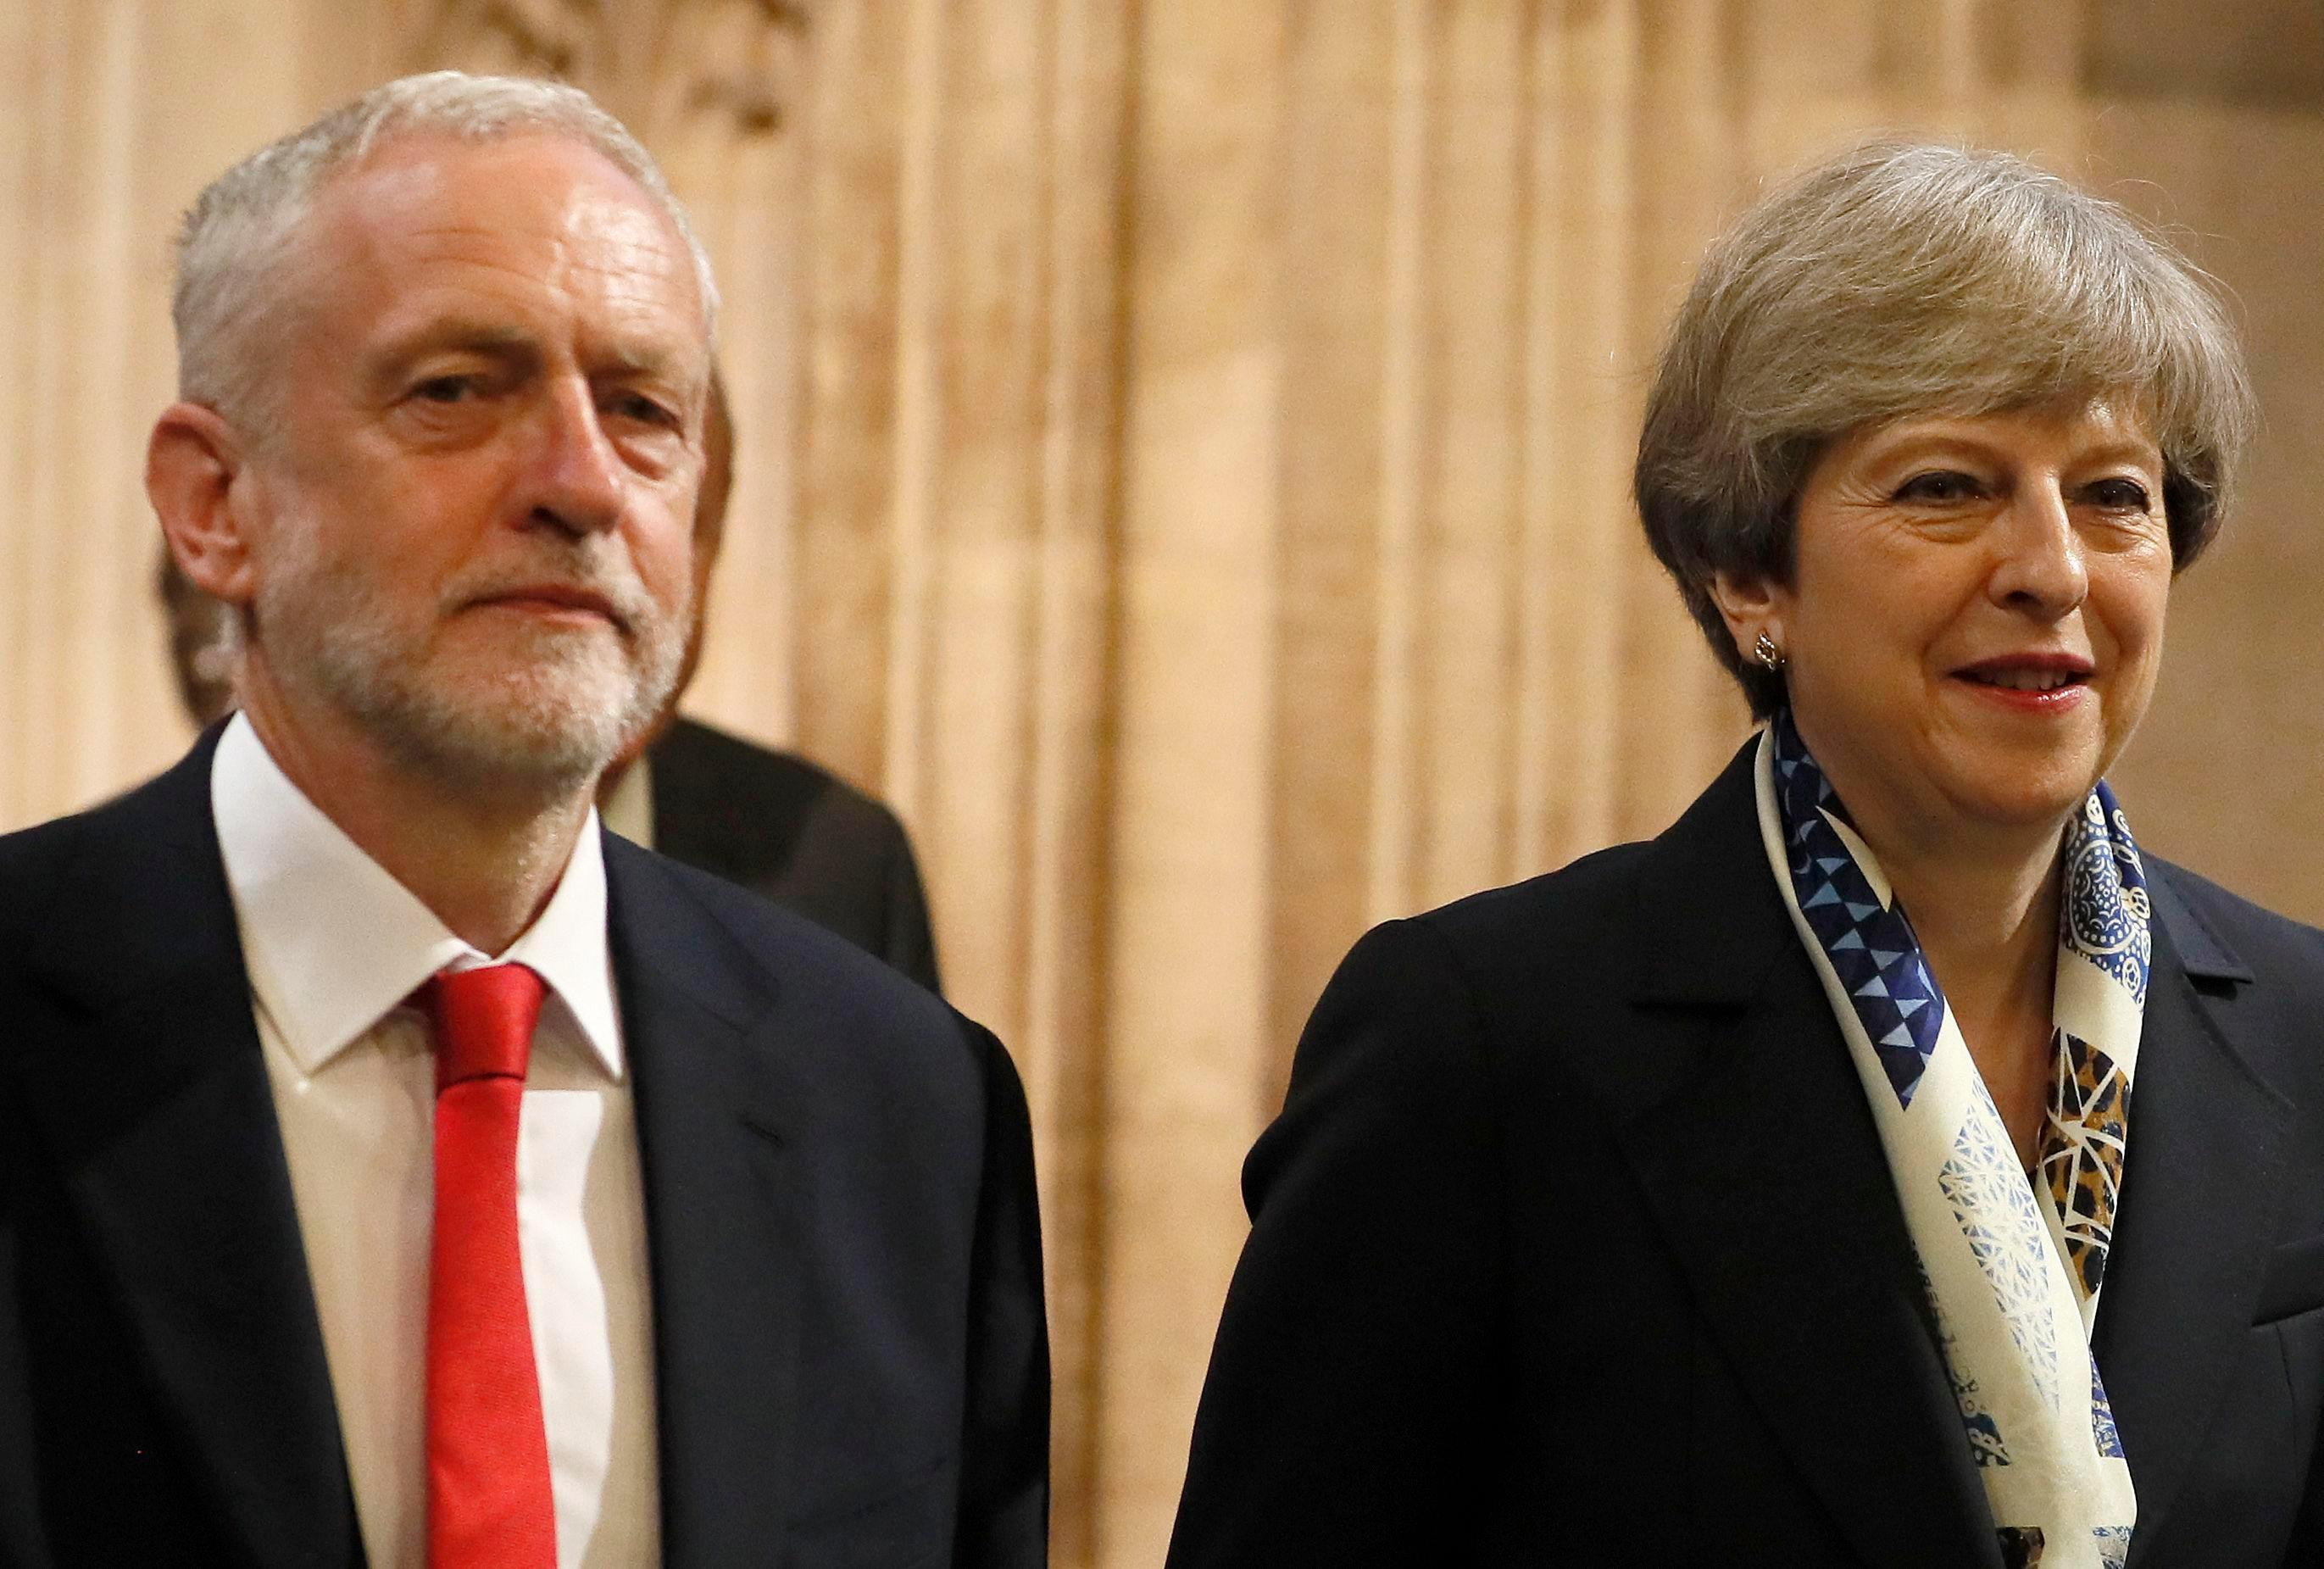 Theresa May still ahead of Jeremy Corbyn on who makes the better Prime Minister despite masses of infighting and a minister threatening to quit